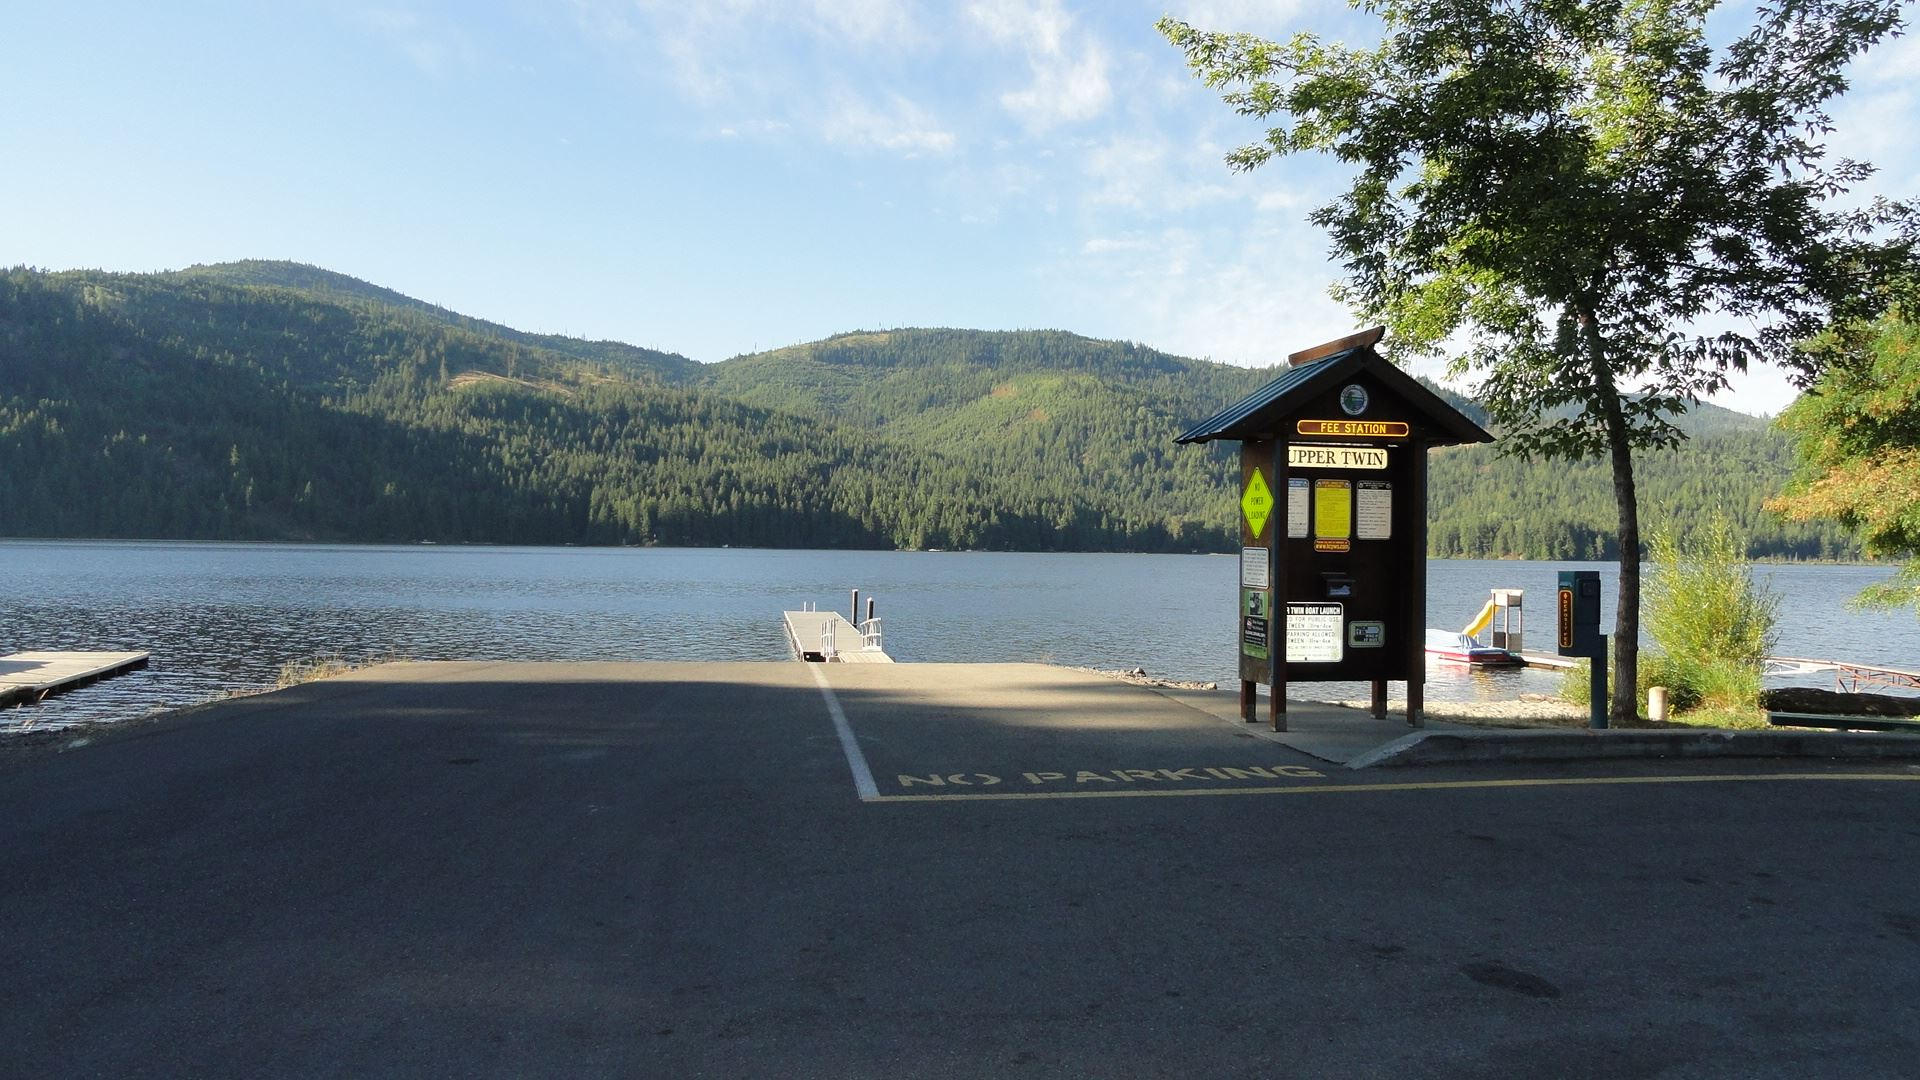 Parking lot leading to boat launch at lake